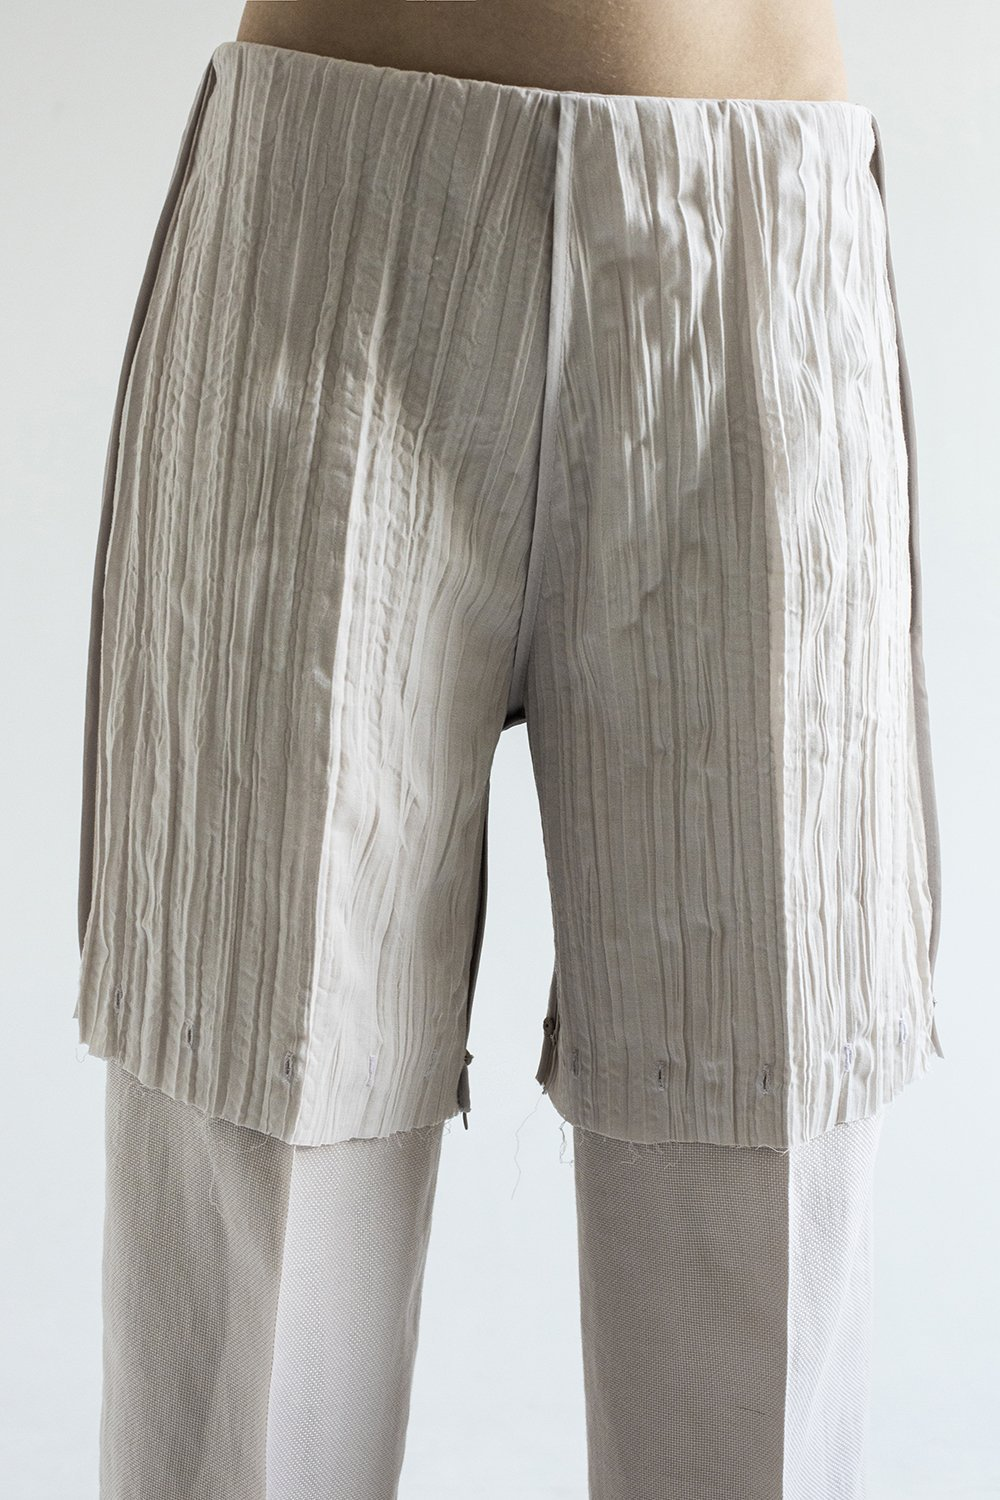 LINING 3-way Transforming Piece: Jumpsuit/Trousers in Cream - The Clothing LoungeDZHUS